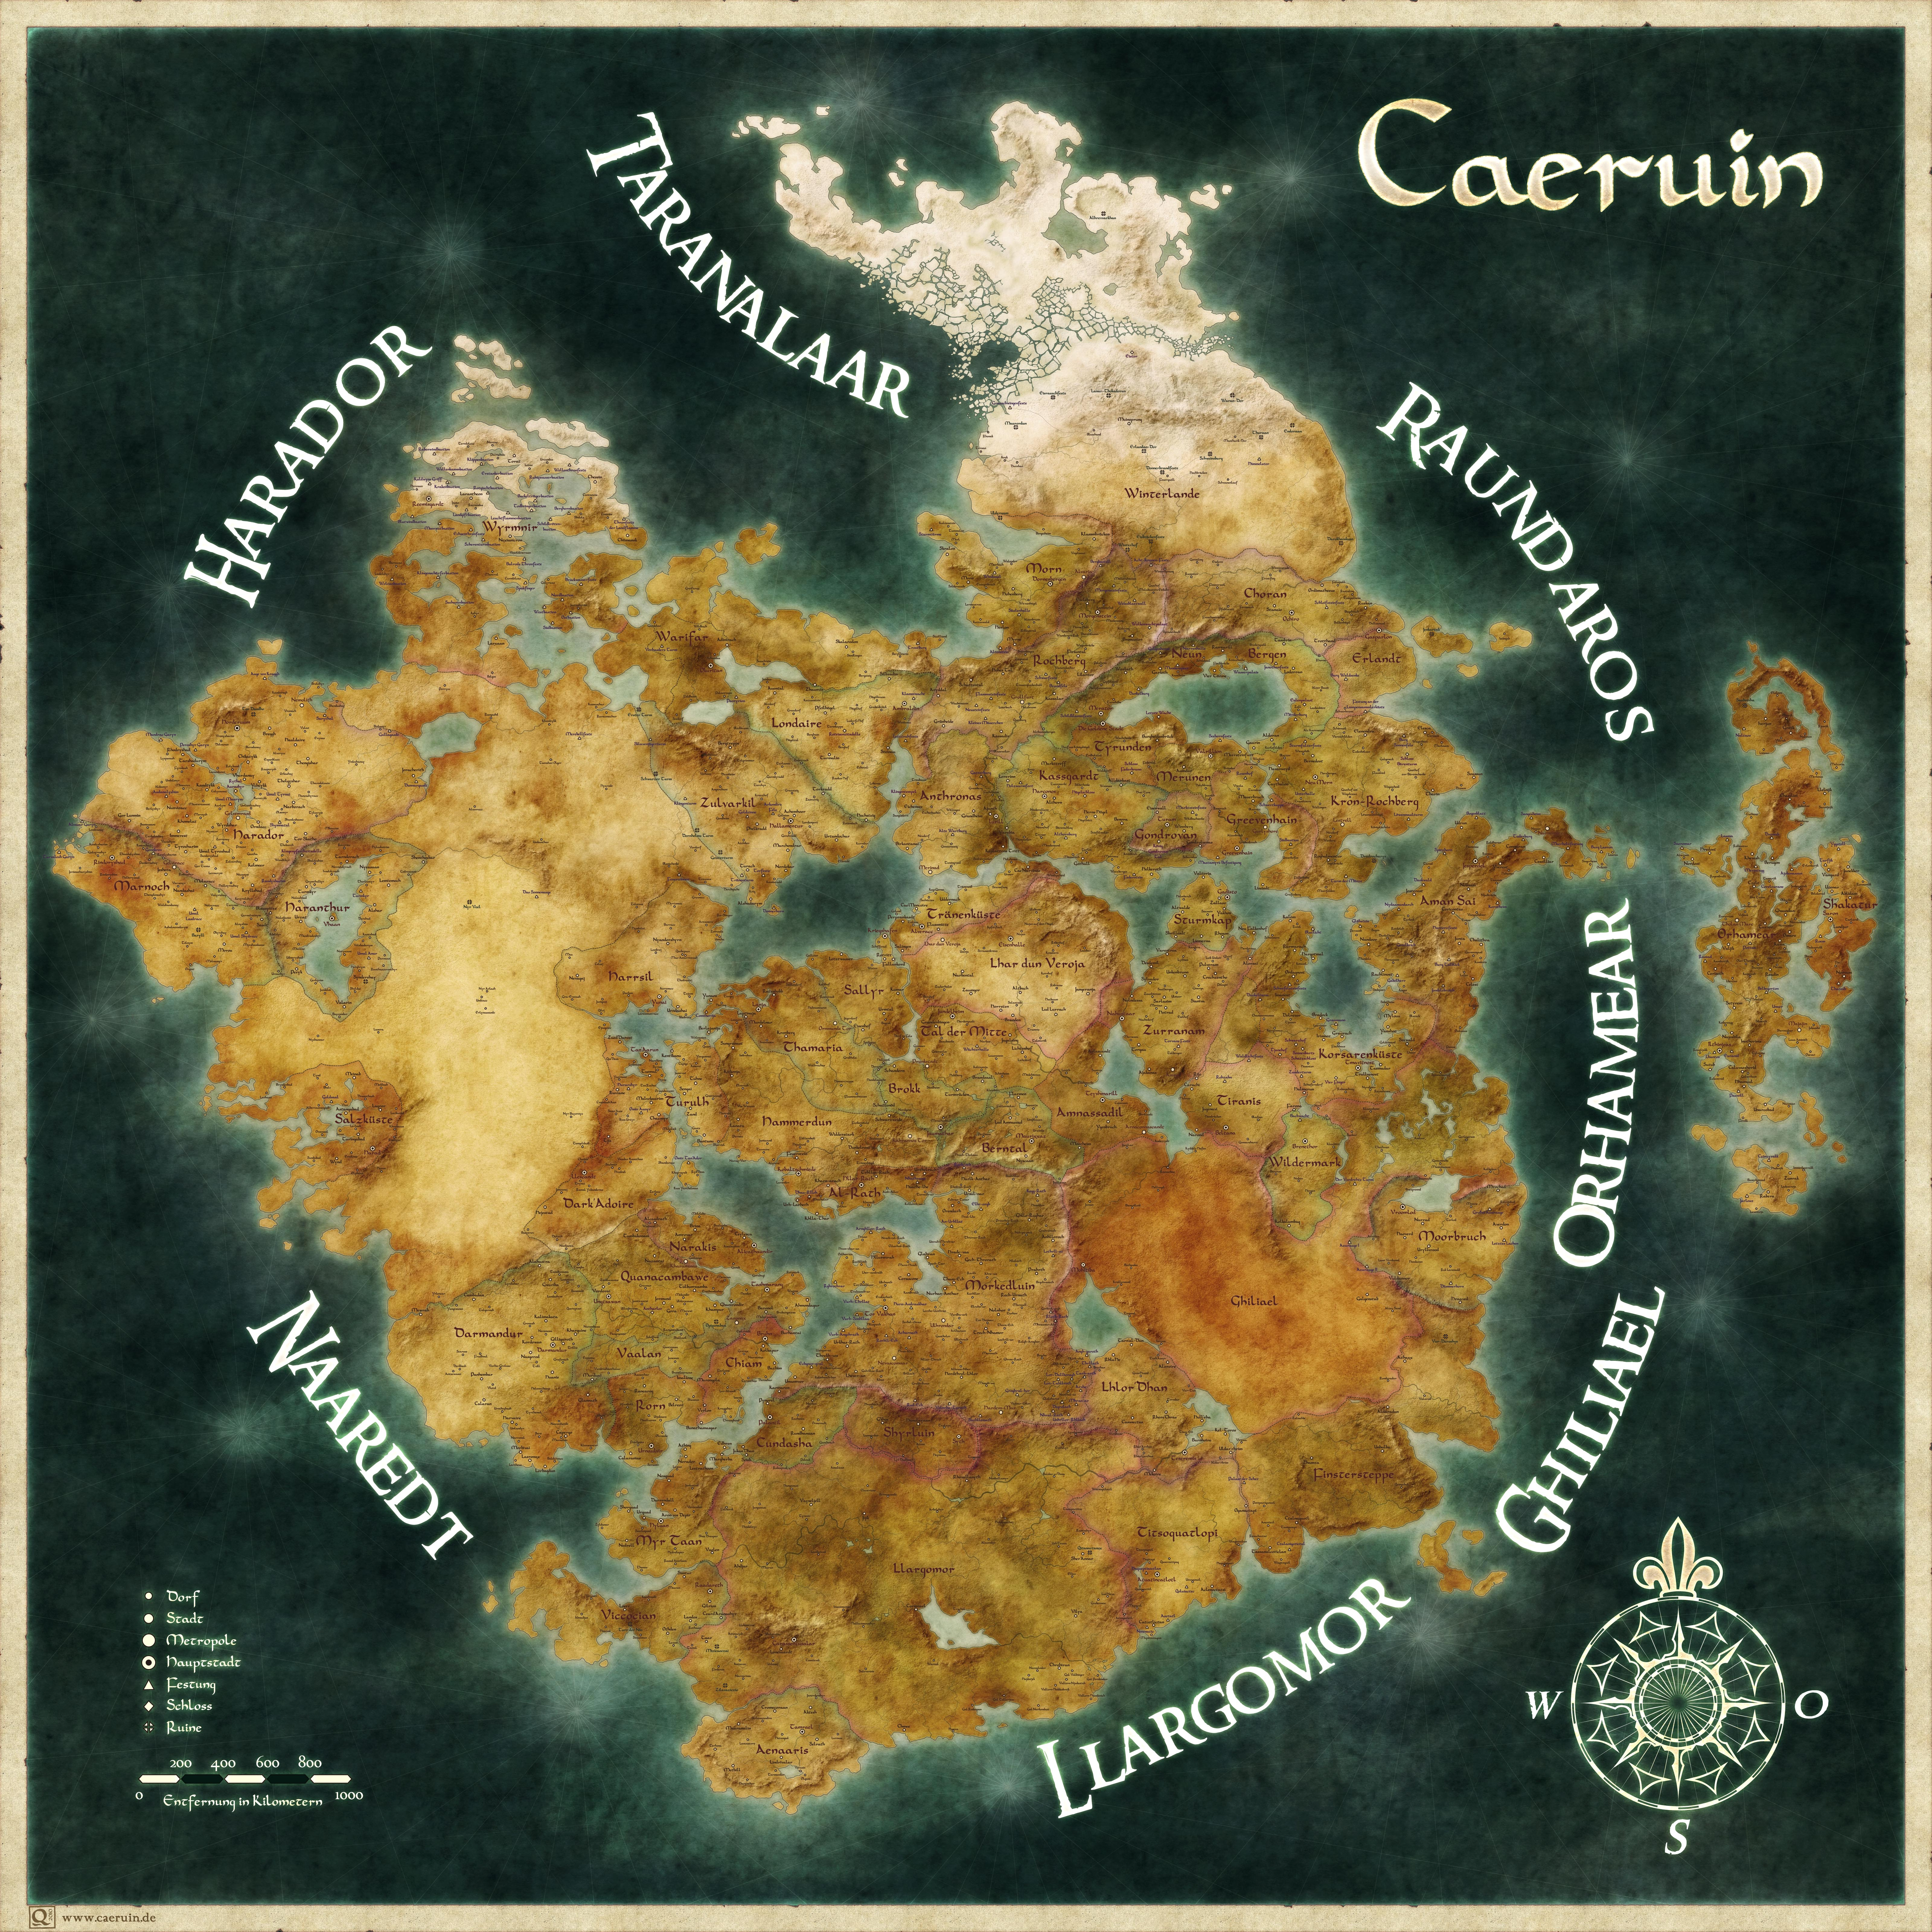 Worldmap of Caeruin 6 by Quabbe